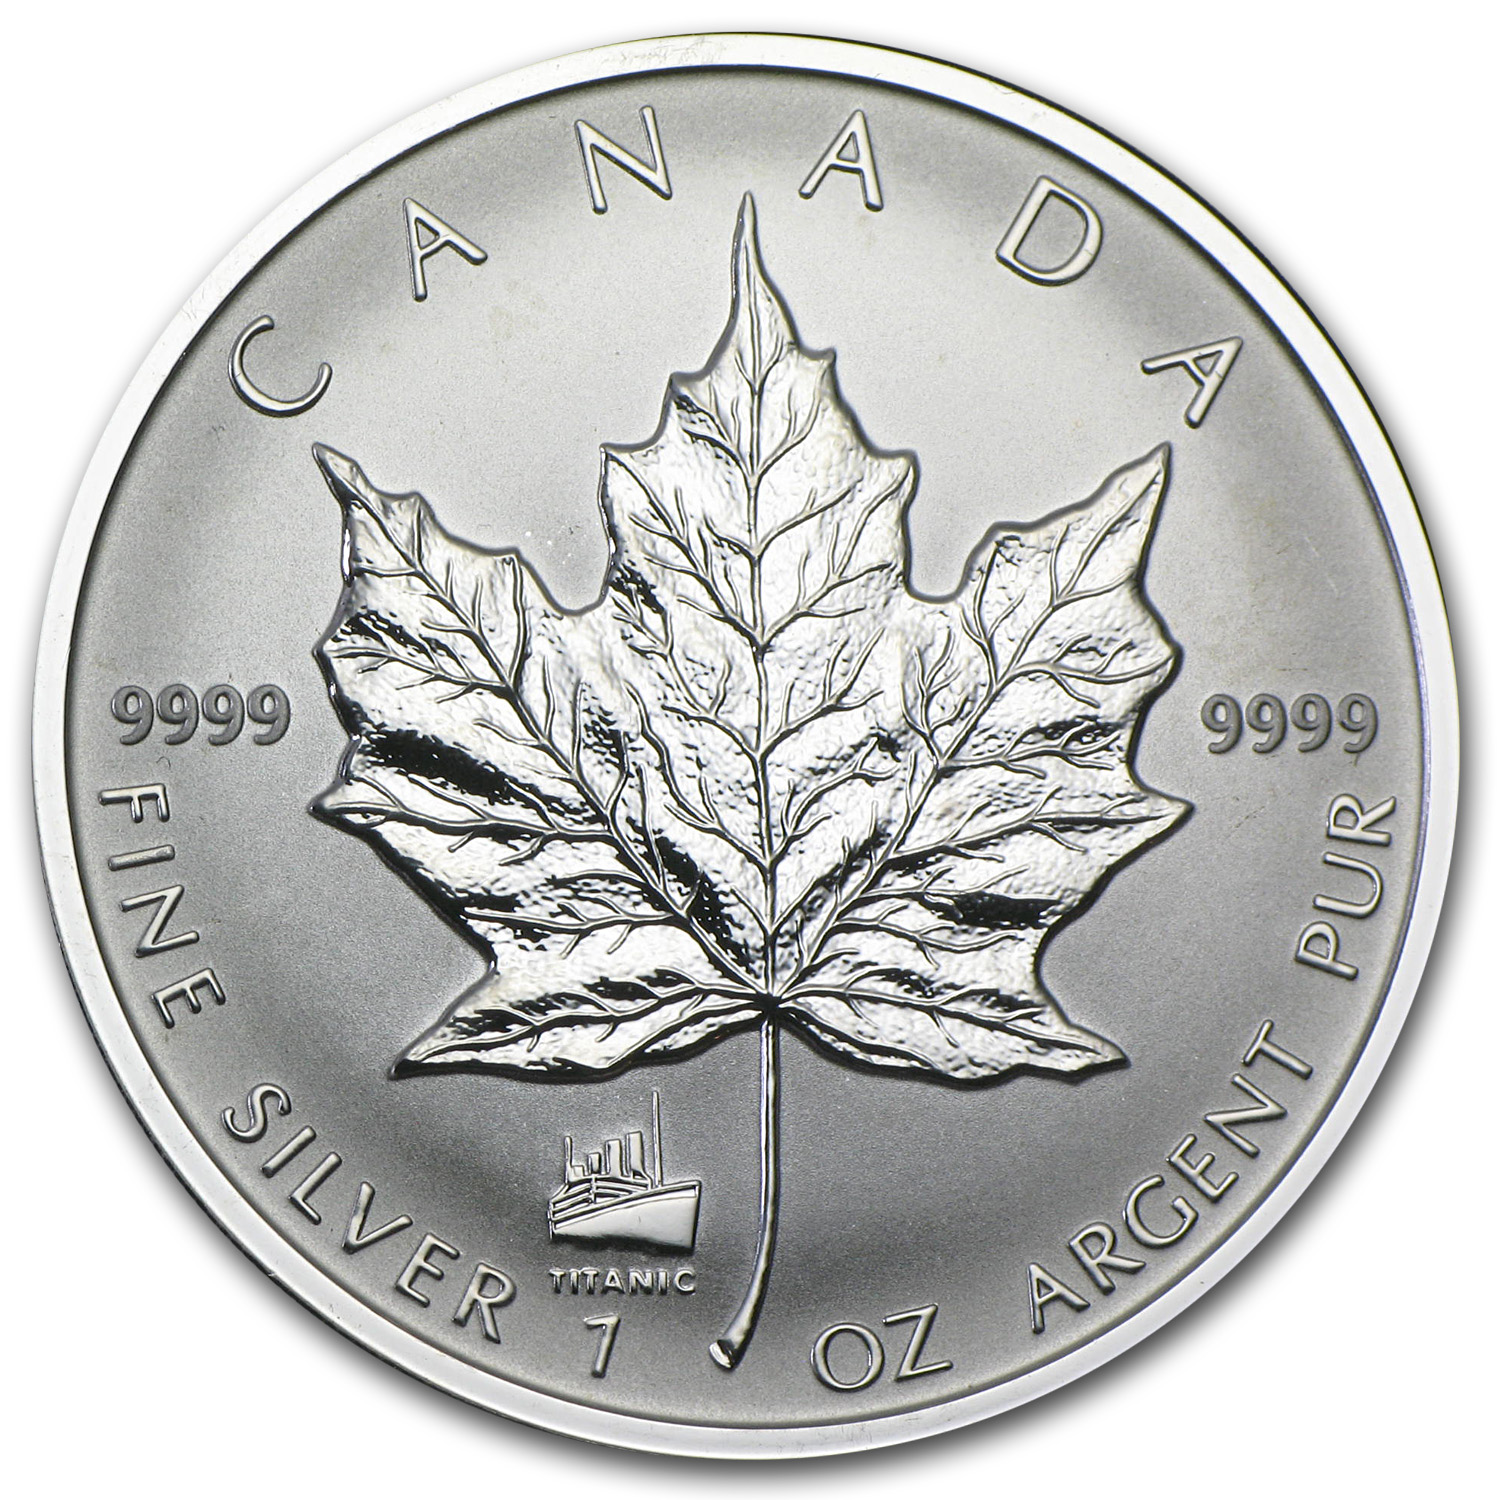 1998 1 oz Silver Canadian Maple Leaf - Titanic Privy